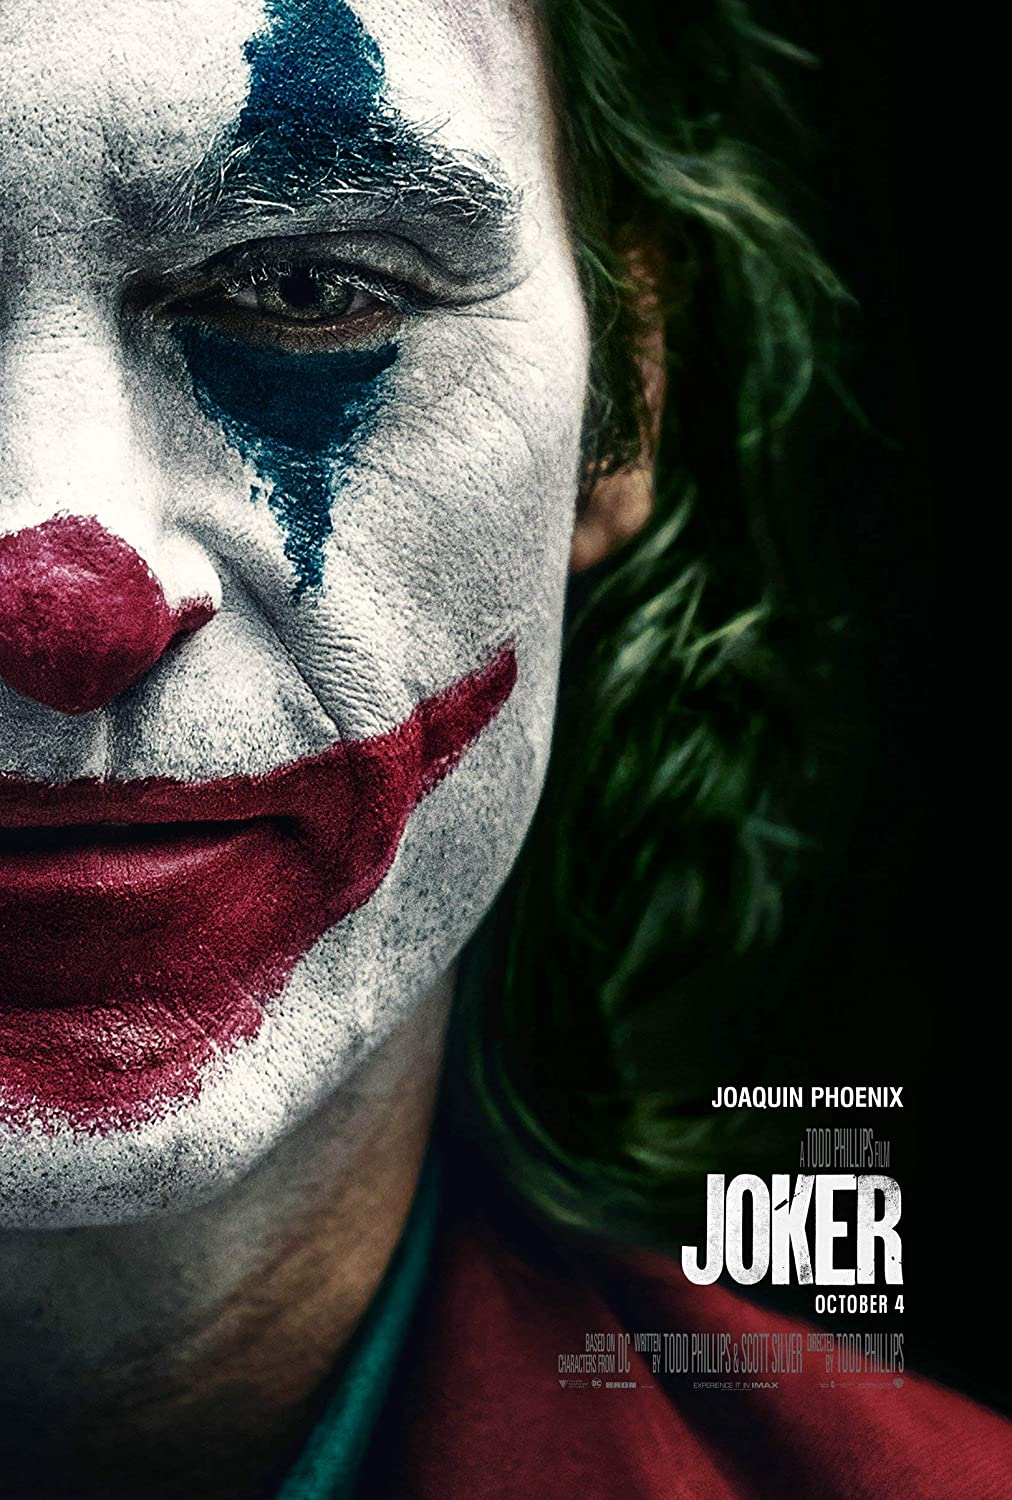 Image result for joker poster""